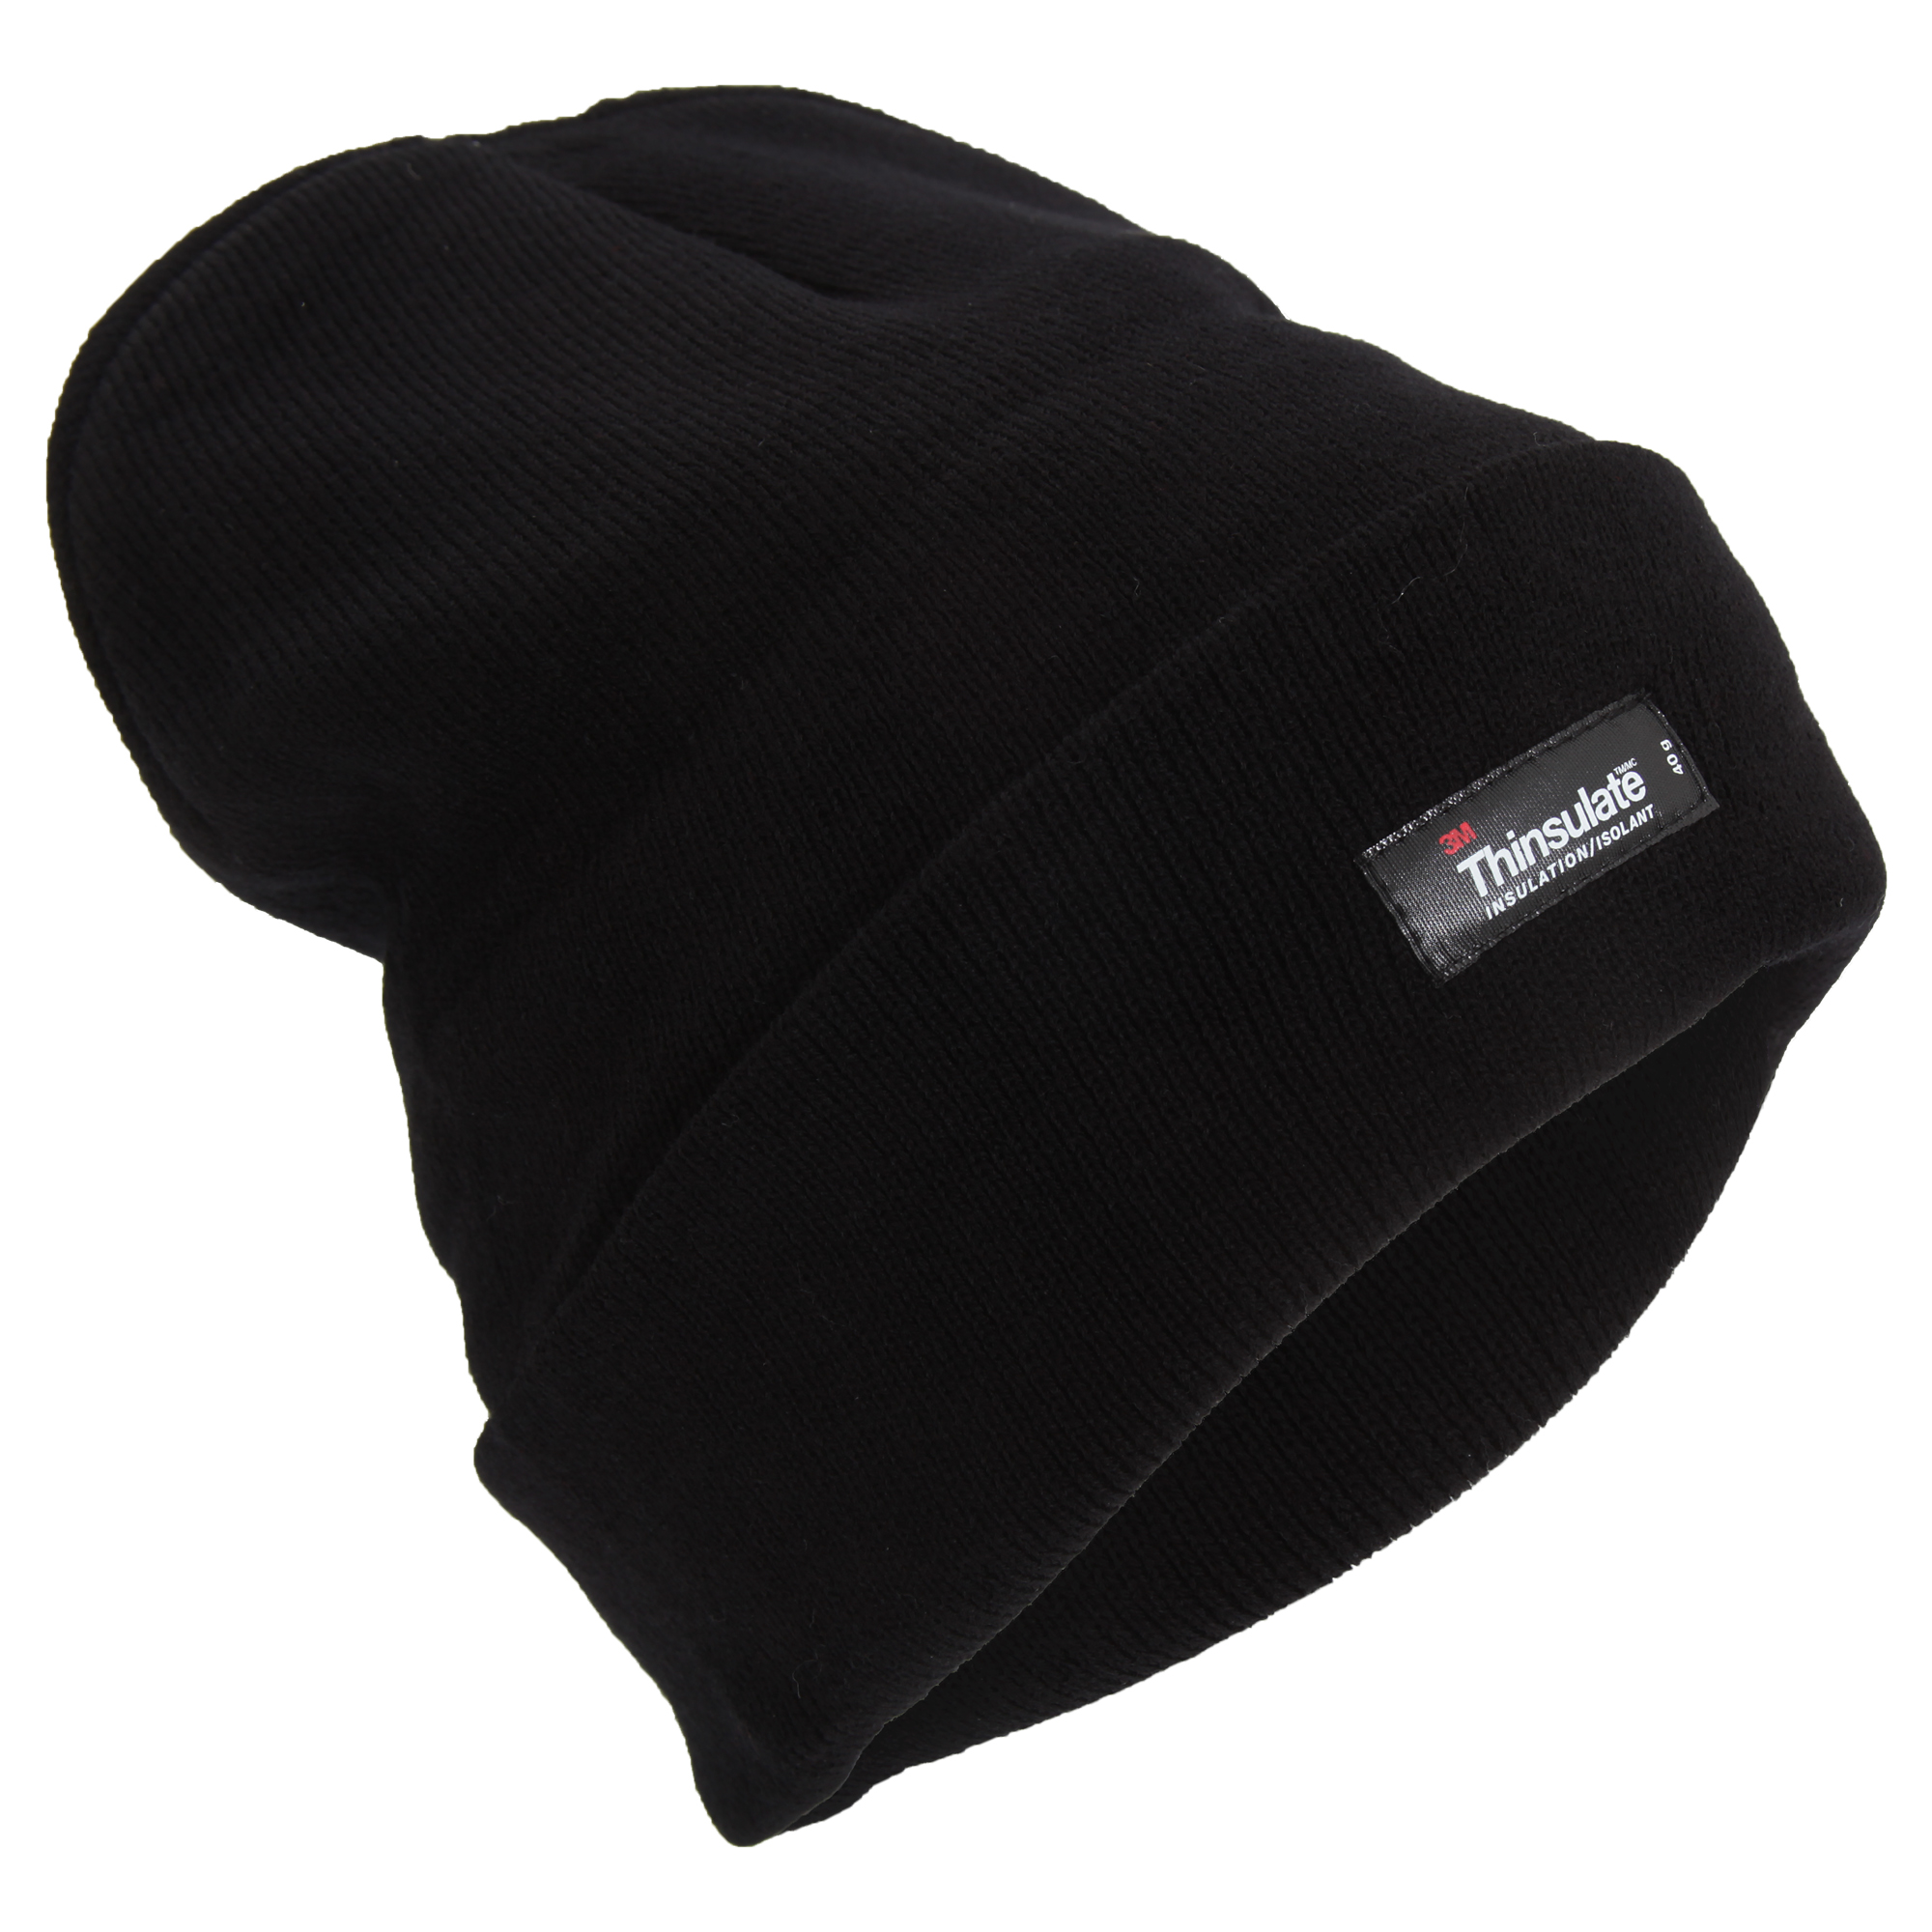 Details about Mens Heatguard Thermal Thinsulate Winter Ski Beanie Hat  (HA466) 694b83370911